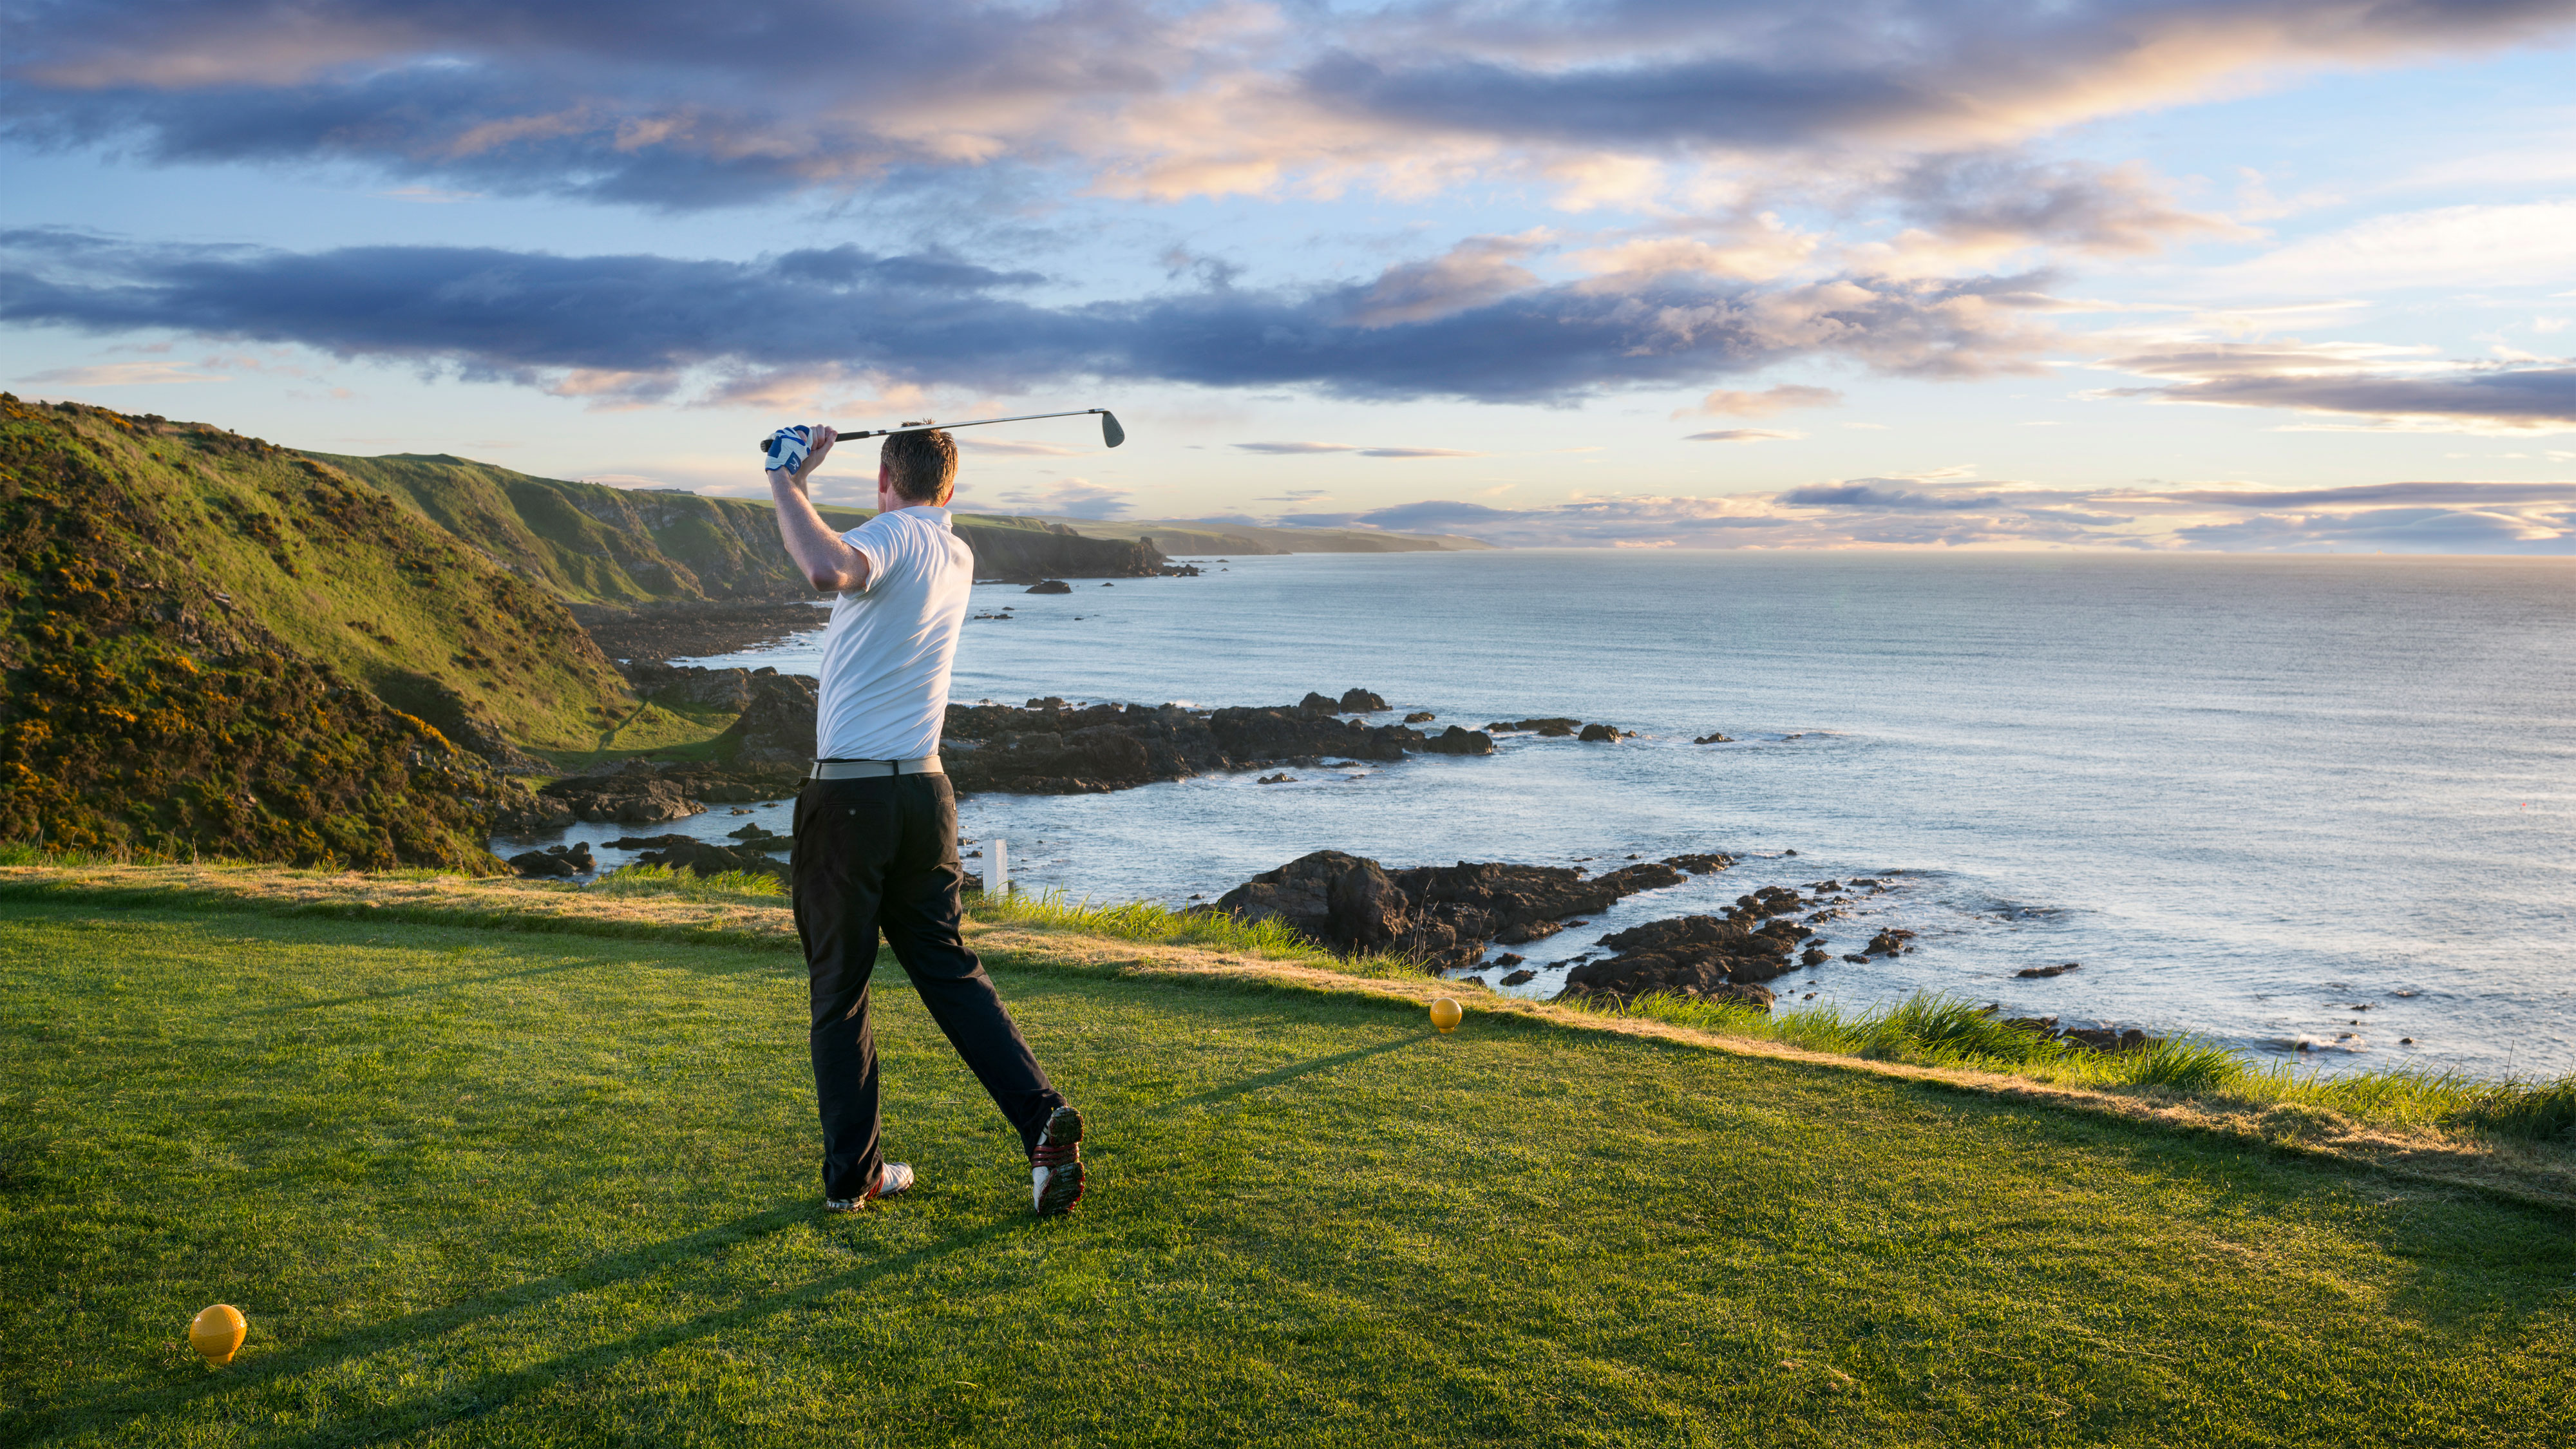 Golfer teeing off by cliffs and sea at Stonehaven scotland